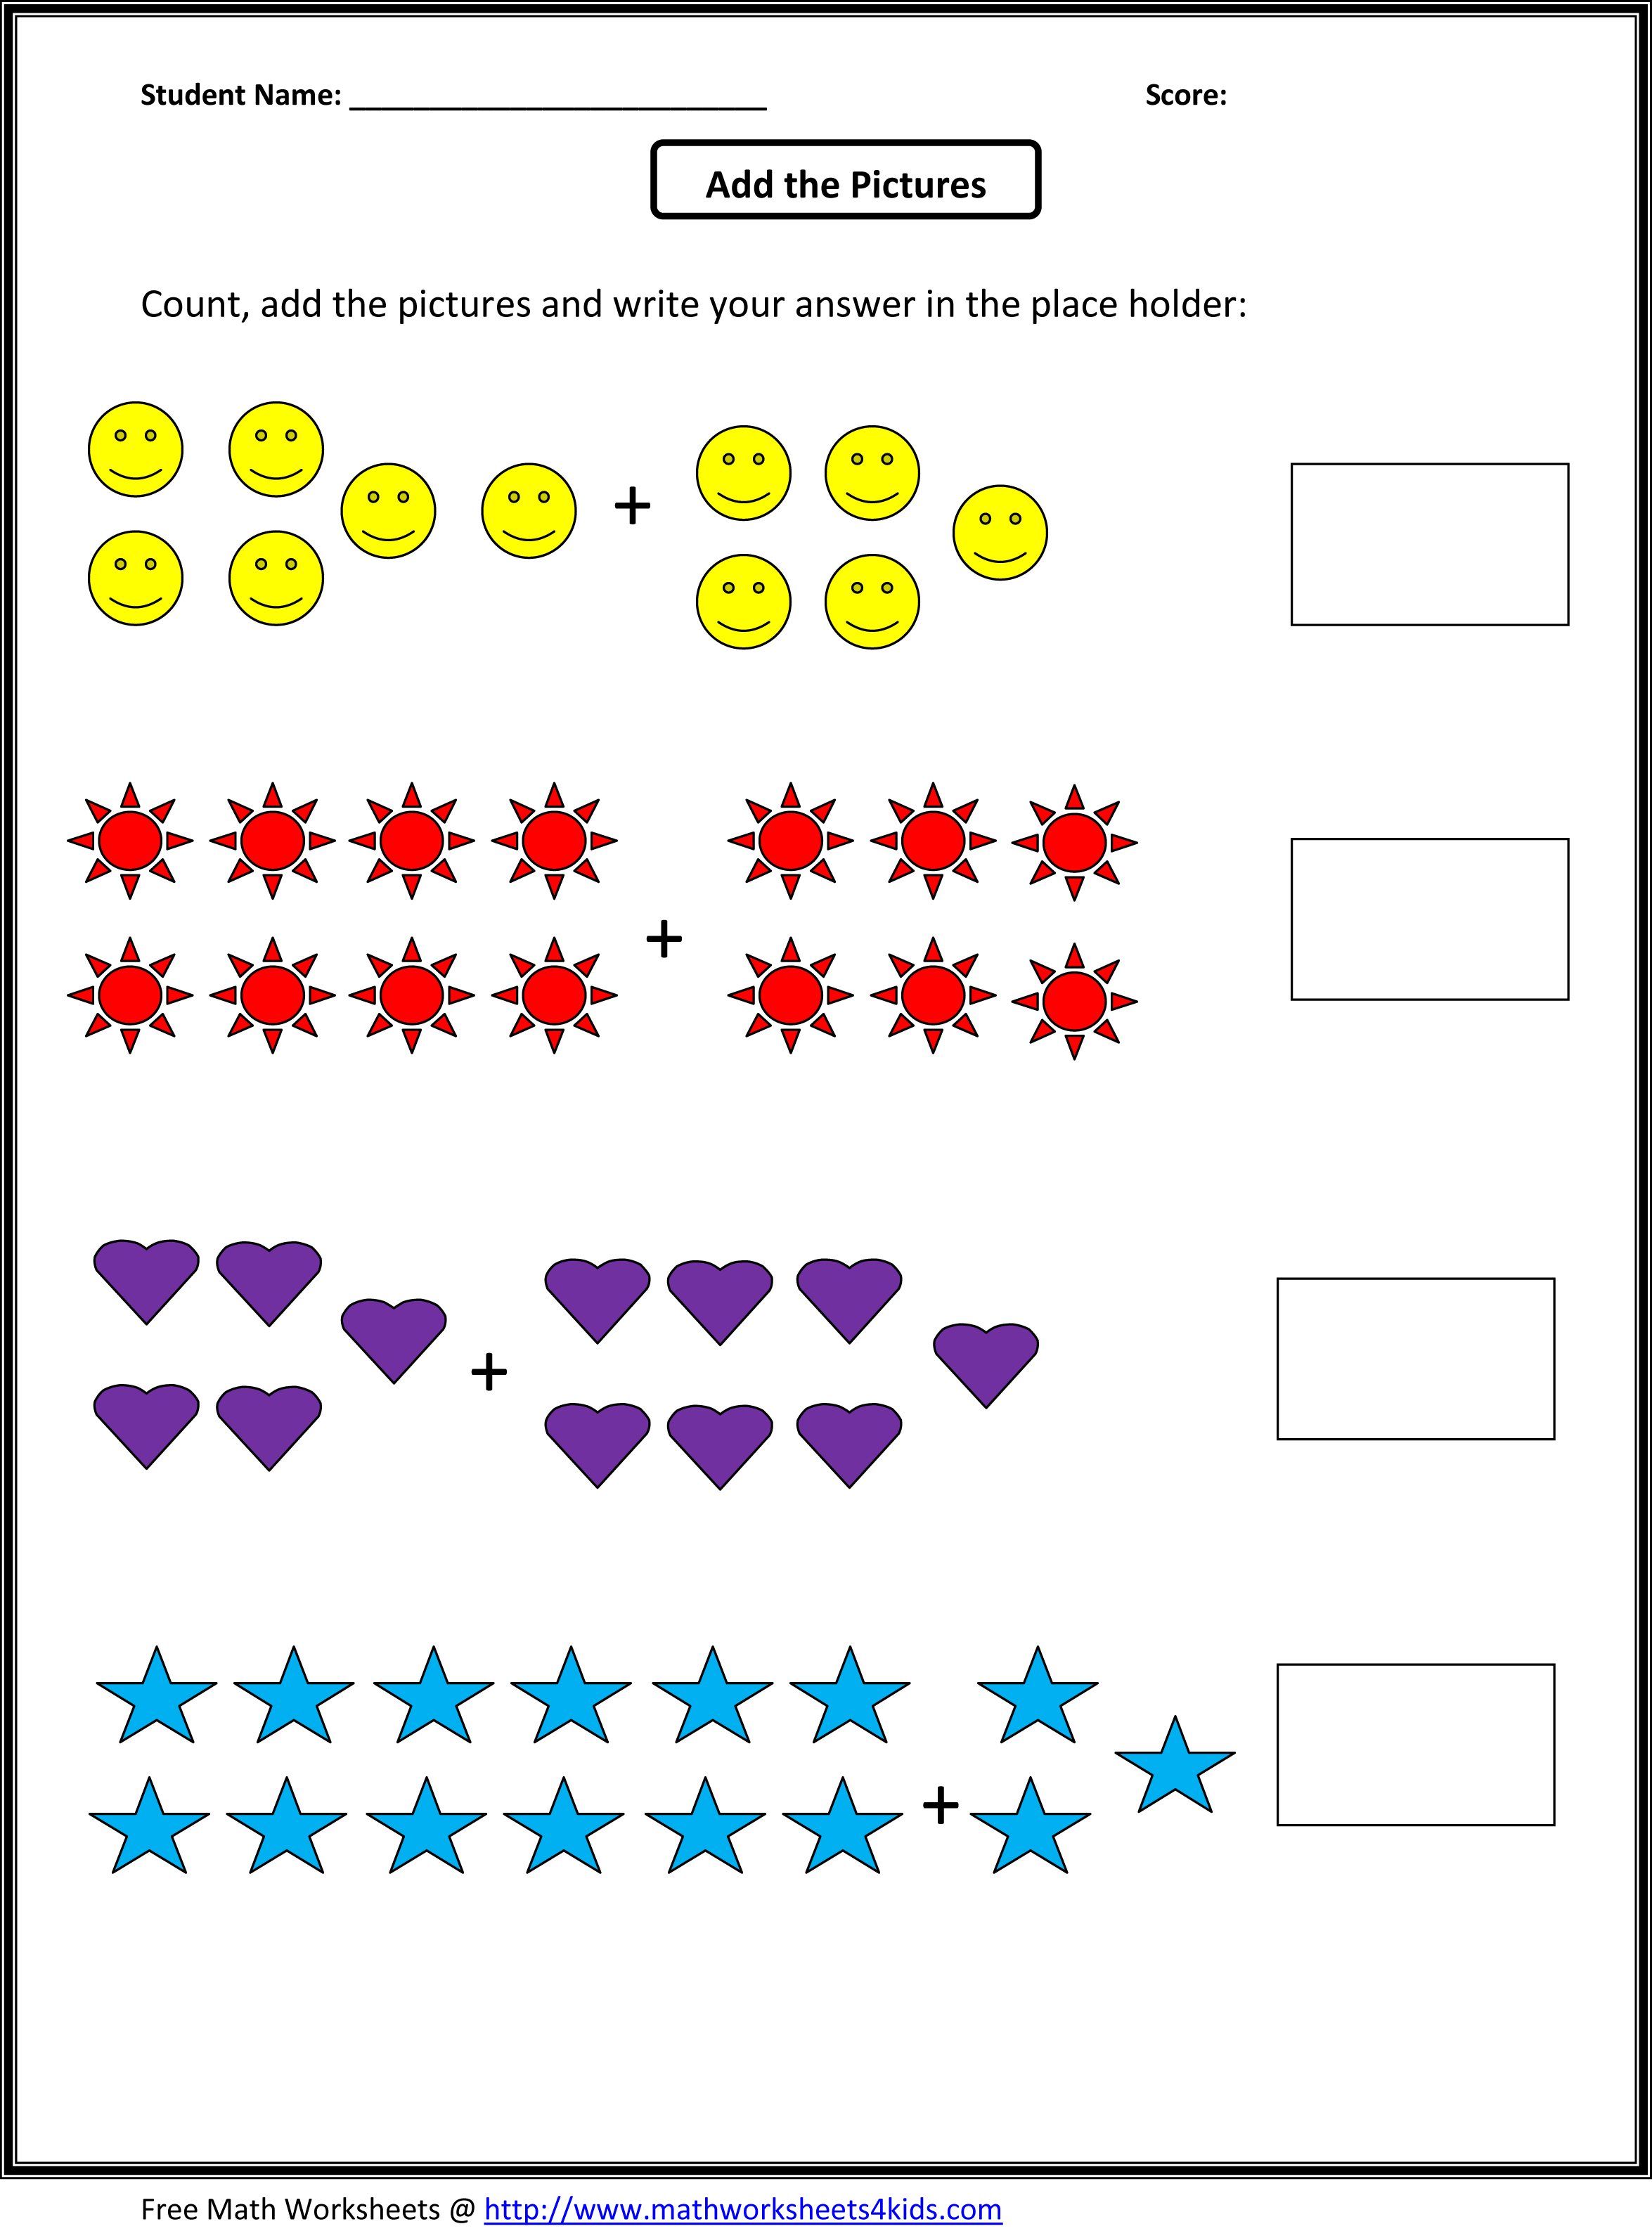 Weirdmailus  Pleasant Grade  Maths Worksheet  Reocurent With Licious Math Worksheets For St Grade Free  Reocurent With Astonishing Xmas Worksheets Also Sight Words For First Grade Worksheets In Addition Electrical Circuit Symbols Worksheet And Worksheet On Phonics As Well As Missing Words Worksheets Additionally Worksheets For Alphabets From Reocurentcom With Weirdmailus  Licious Grade  Maths Worksheet  Reocurent With Astonishing Math Worksheets For St Grade Free  Reocurent And Pleasant Xmas Worksheets Also Sight Words For First Grade Worksheets In Addition Electrical Circuit Symbols Worksheet From Reocurentcom